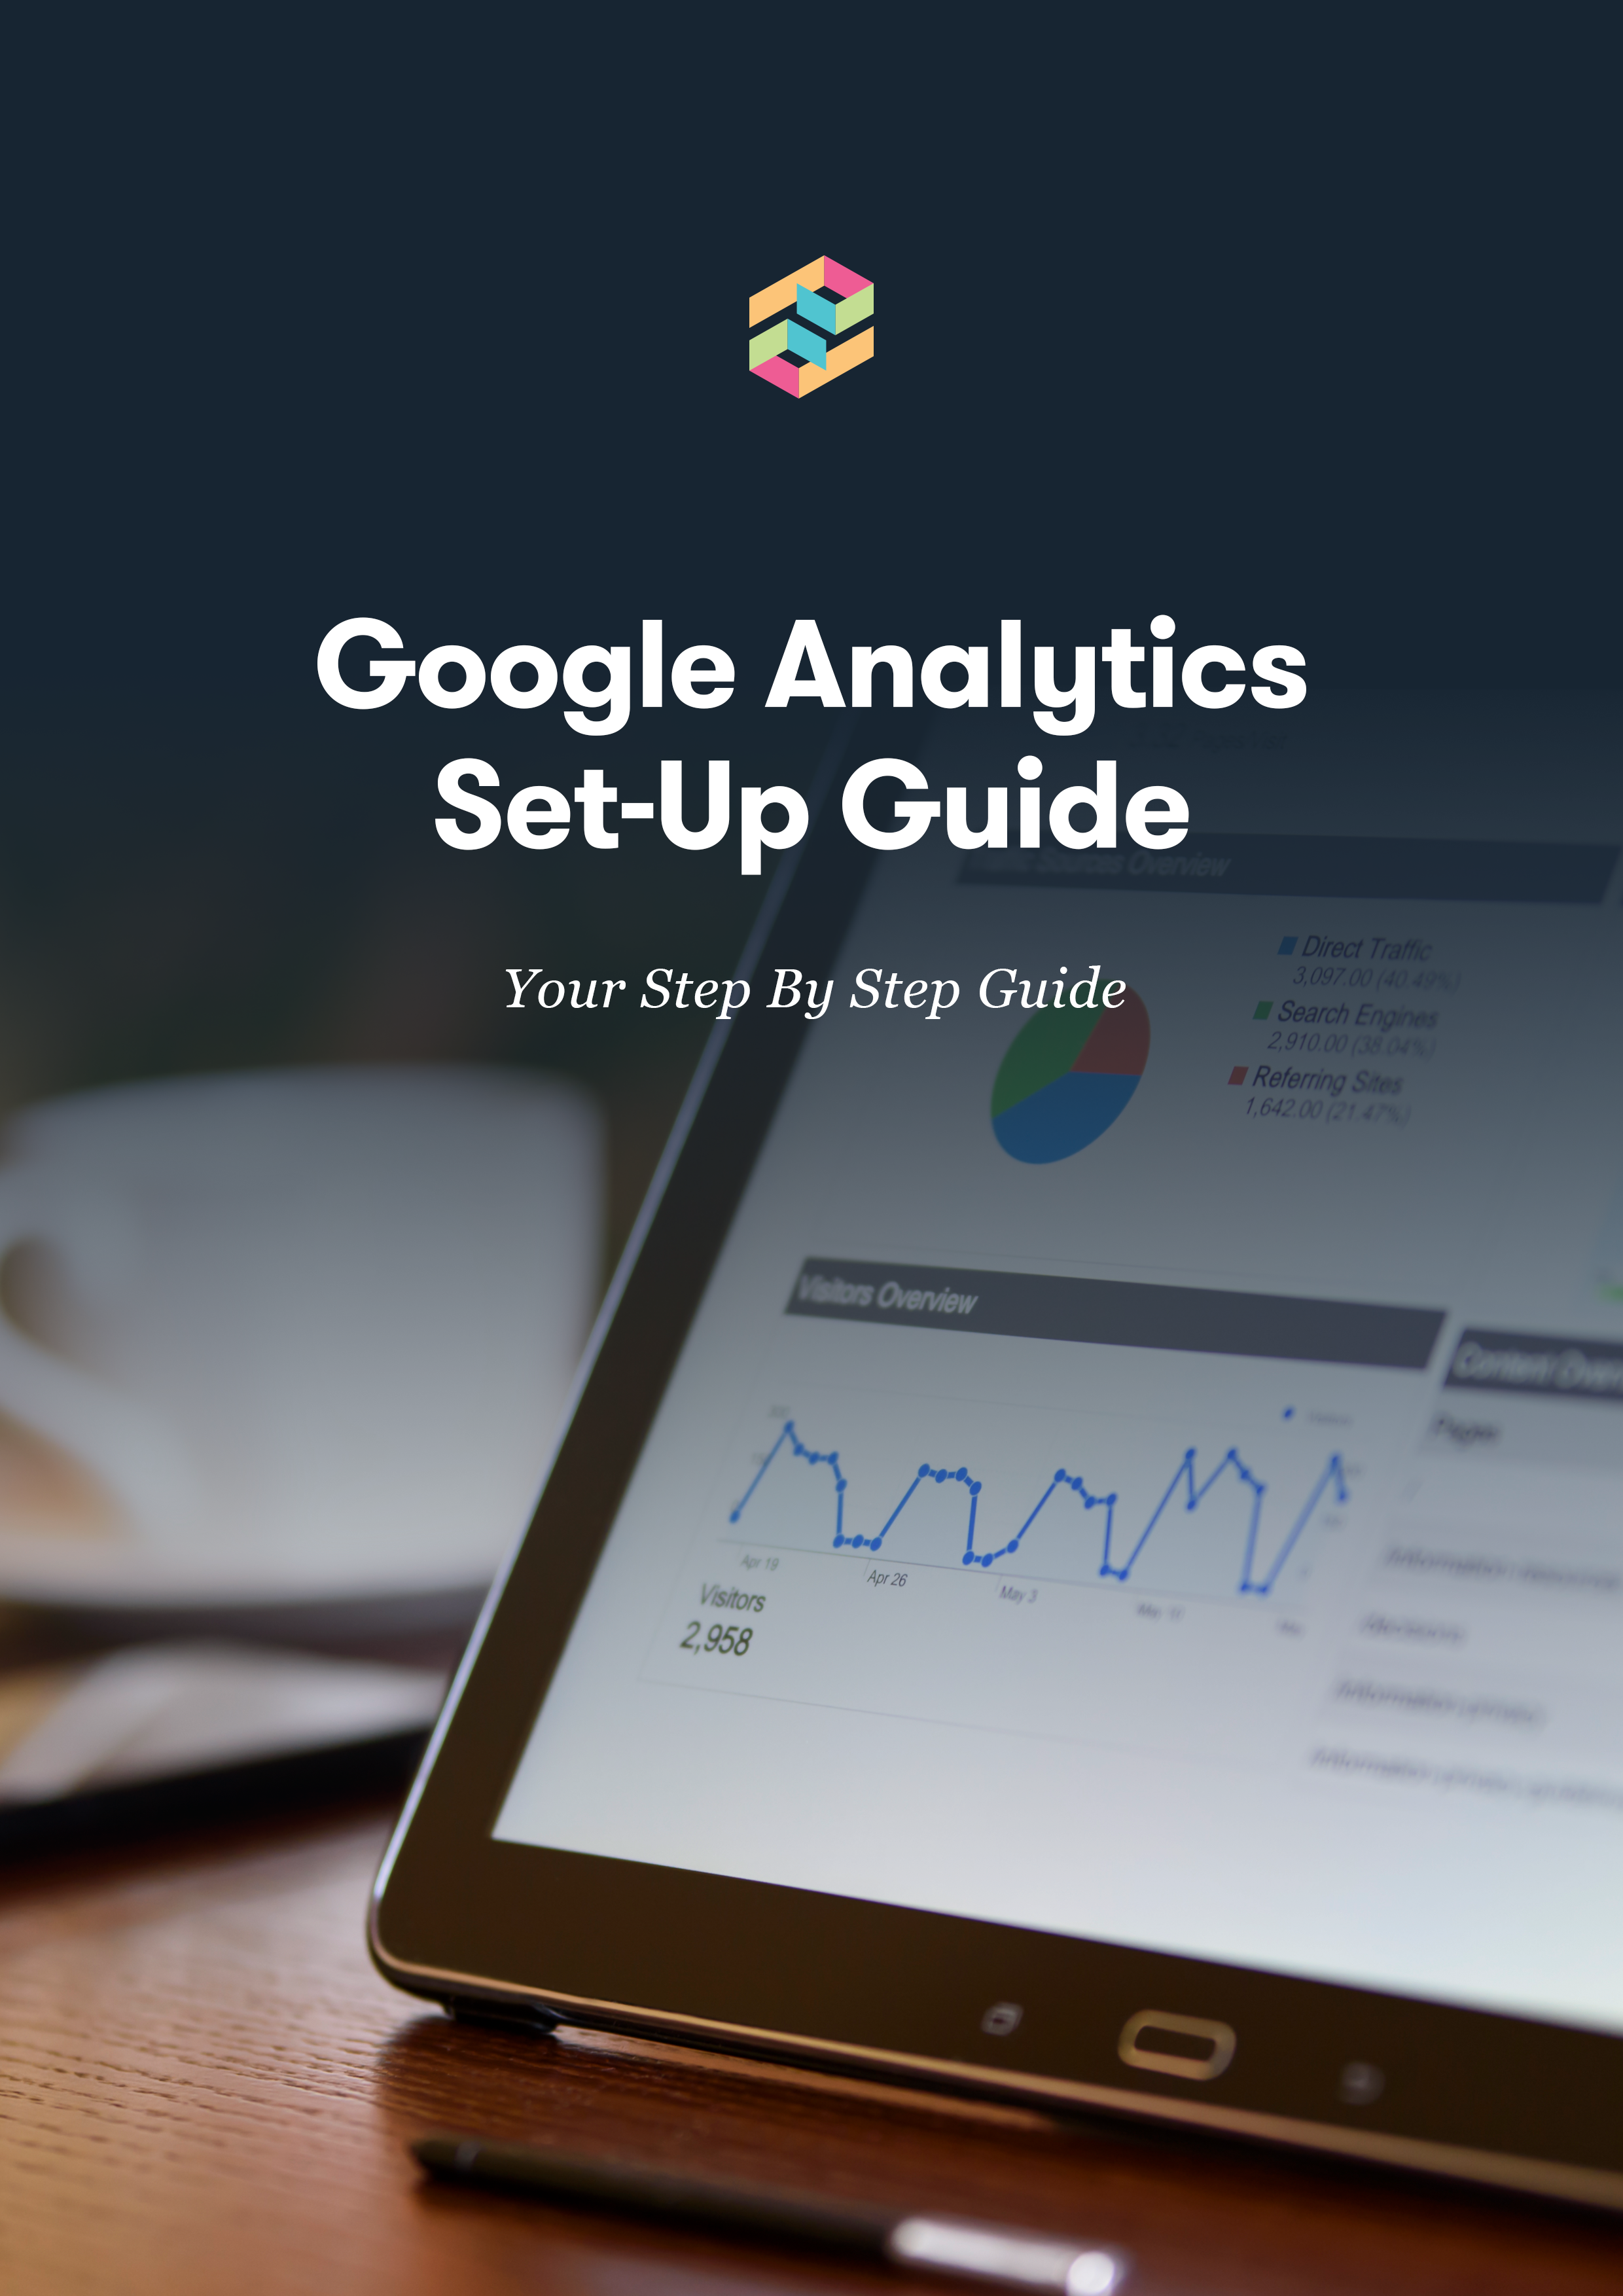 Google Analytics Set-Up Guide